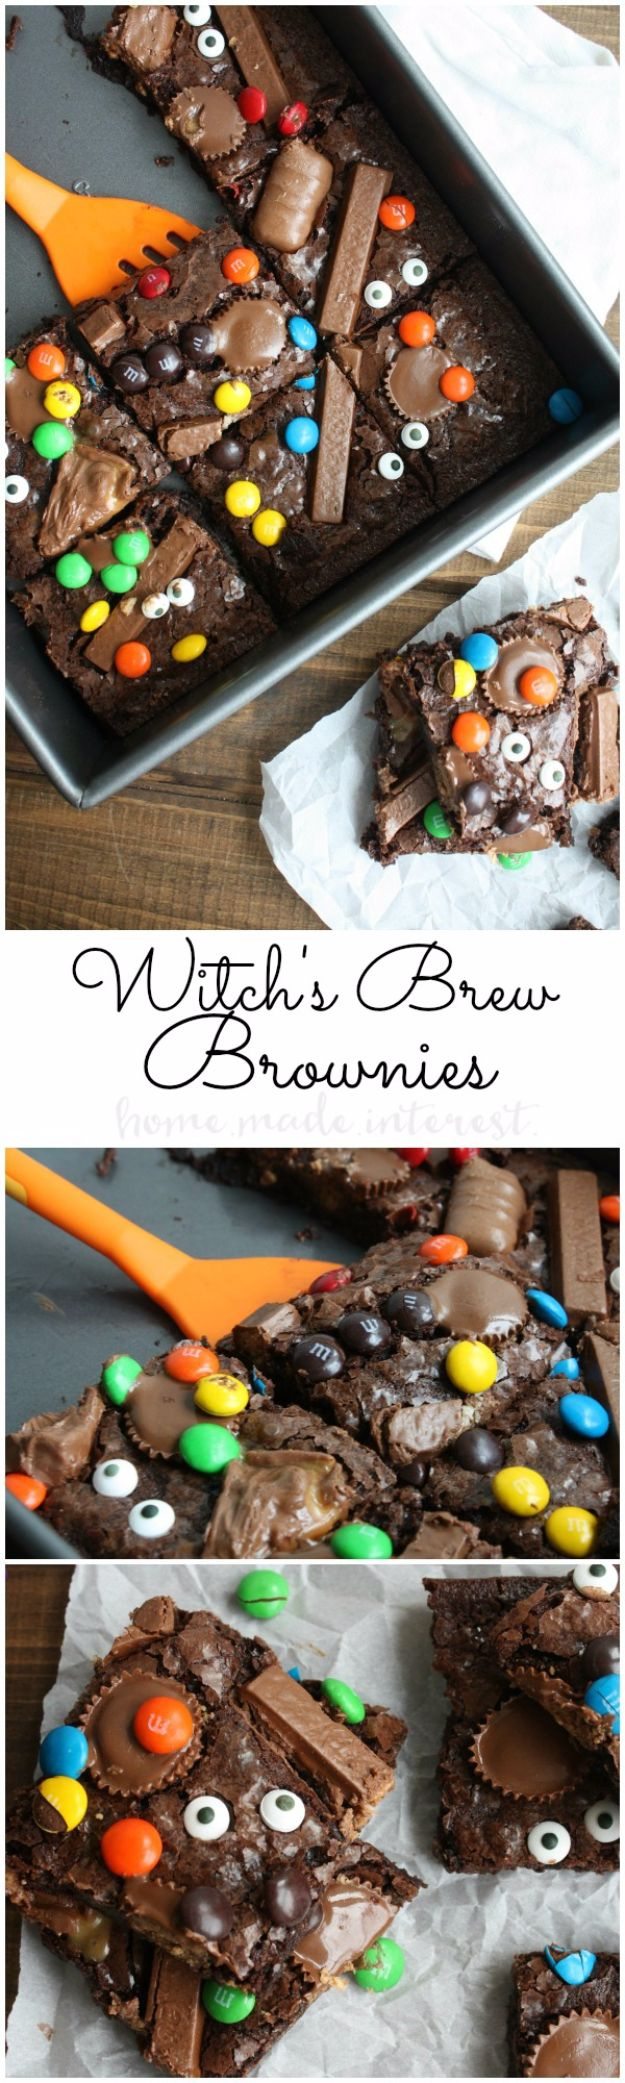 Quick Halloween Party Recipes - Witch's Brew Brownie Recipe- Healthy Ideas for Kids for School, Teens and Adults - Easy and Quick Recipes and Idea for Dips, Chips, Spooky Cookies and Treats - Appetizers and Finger Foods Made With Vegetables, No Candy, Cheap Food, Scary DIY Party Foods With Step by Step Tutorials #halloween #halloweenrecipes #halloweenparty